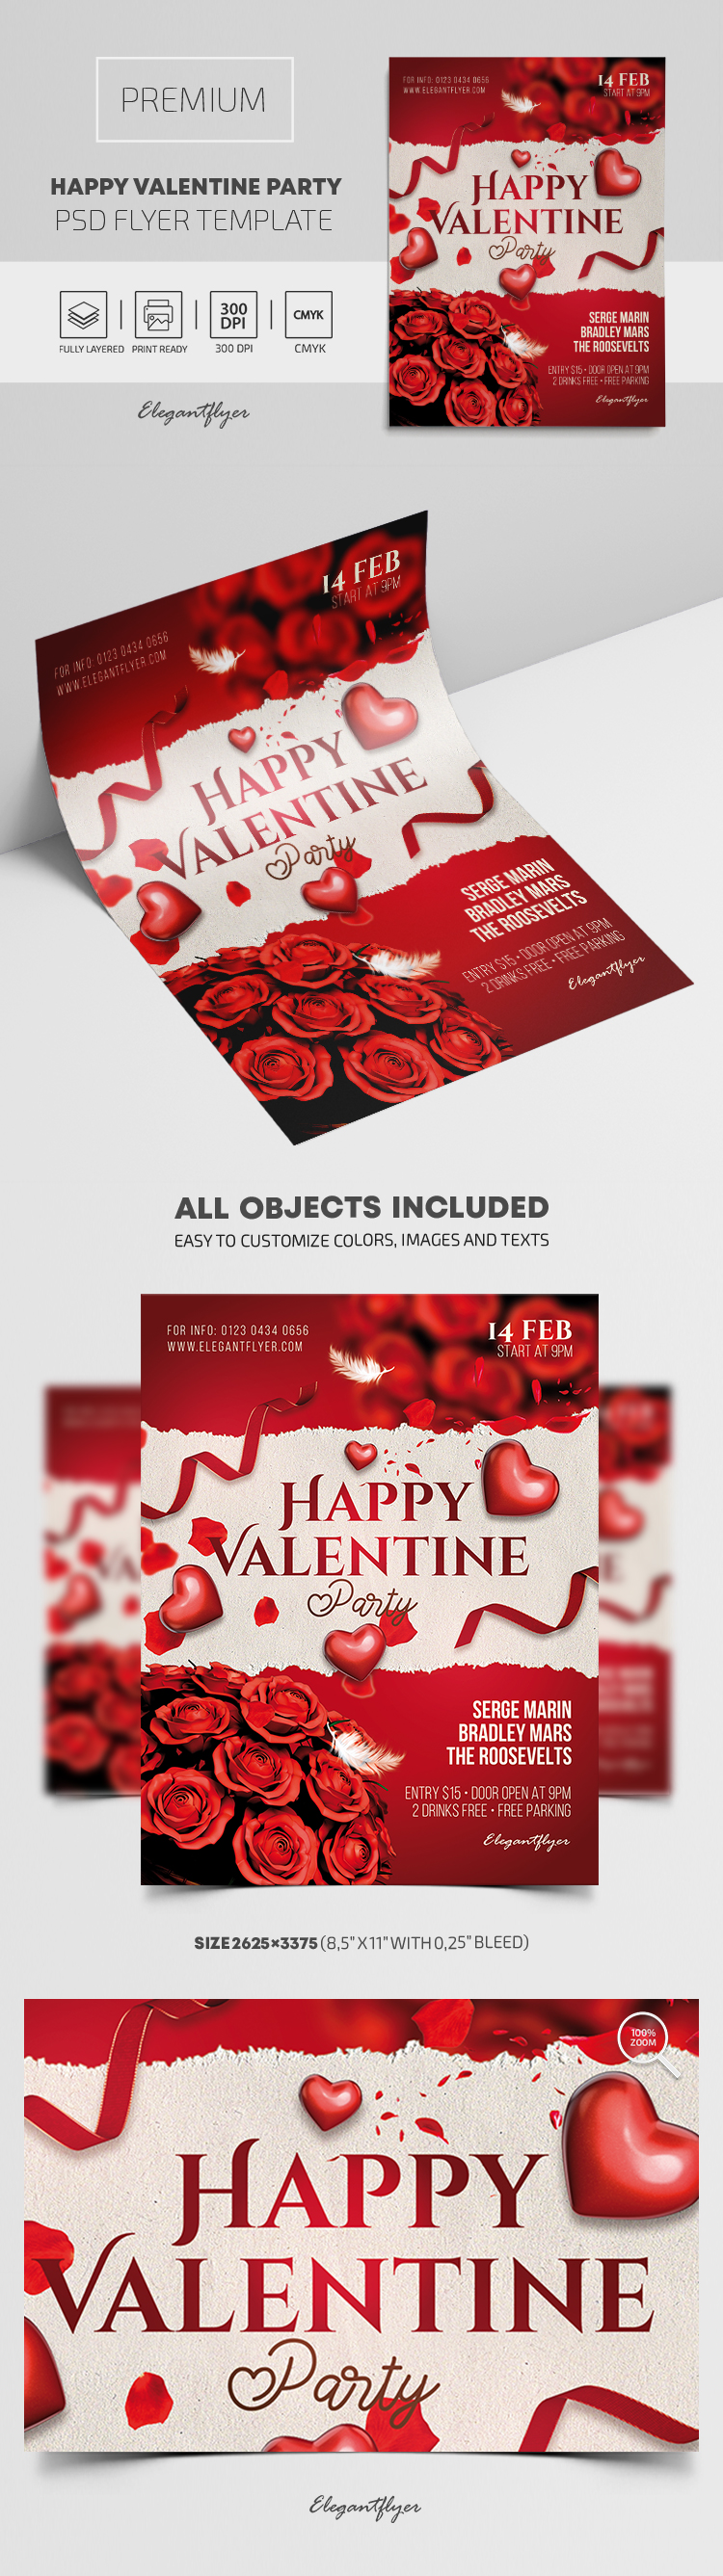 Happy Valentine Party – Premium PSD Flyer Template